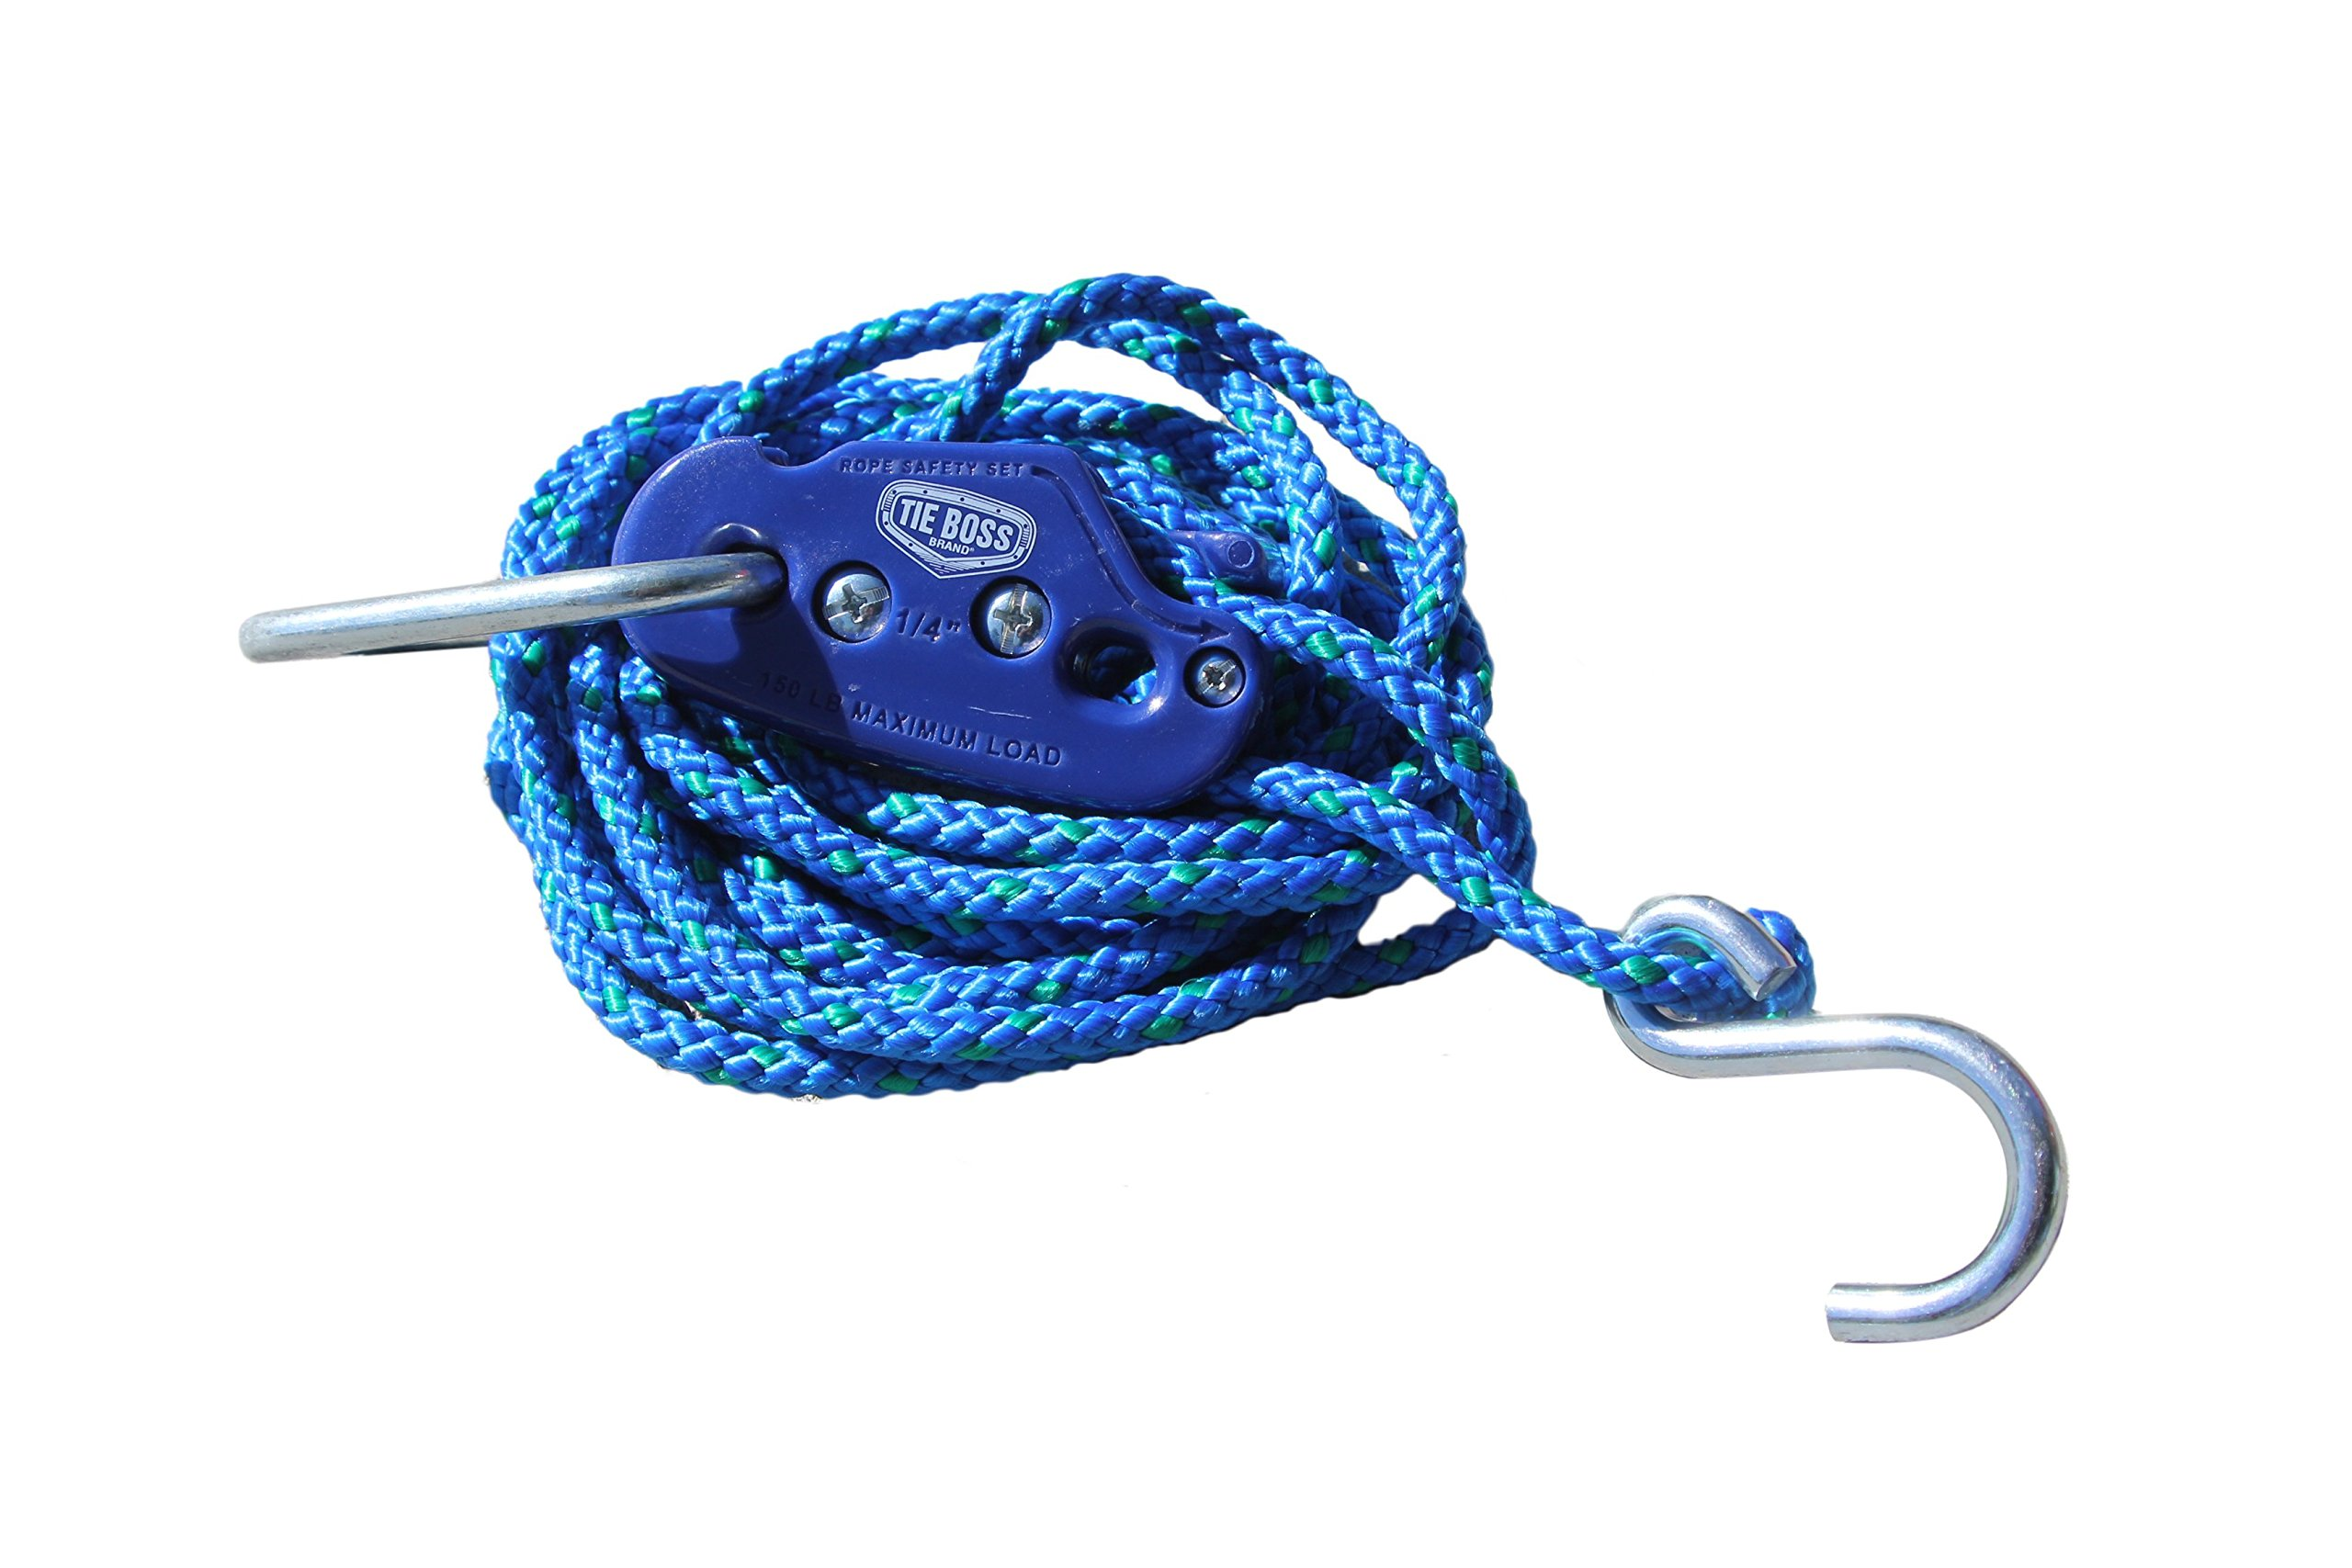 Tie Boss Pulley with 12-Feet Rope, 1/4-Inch